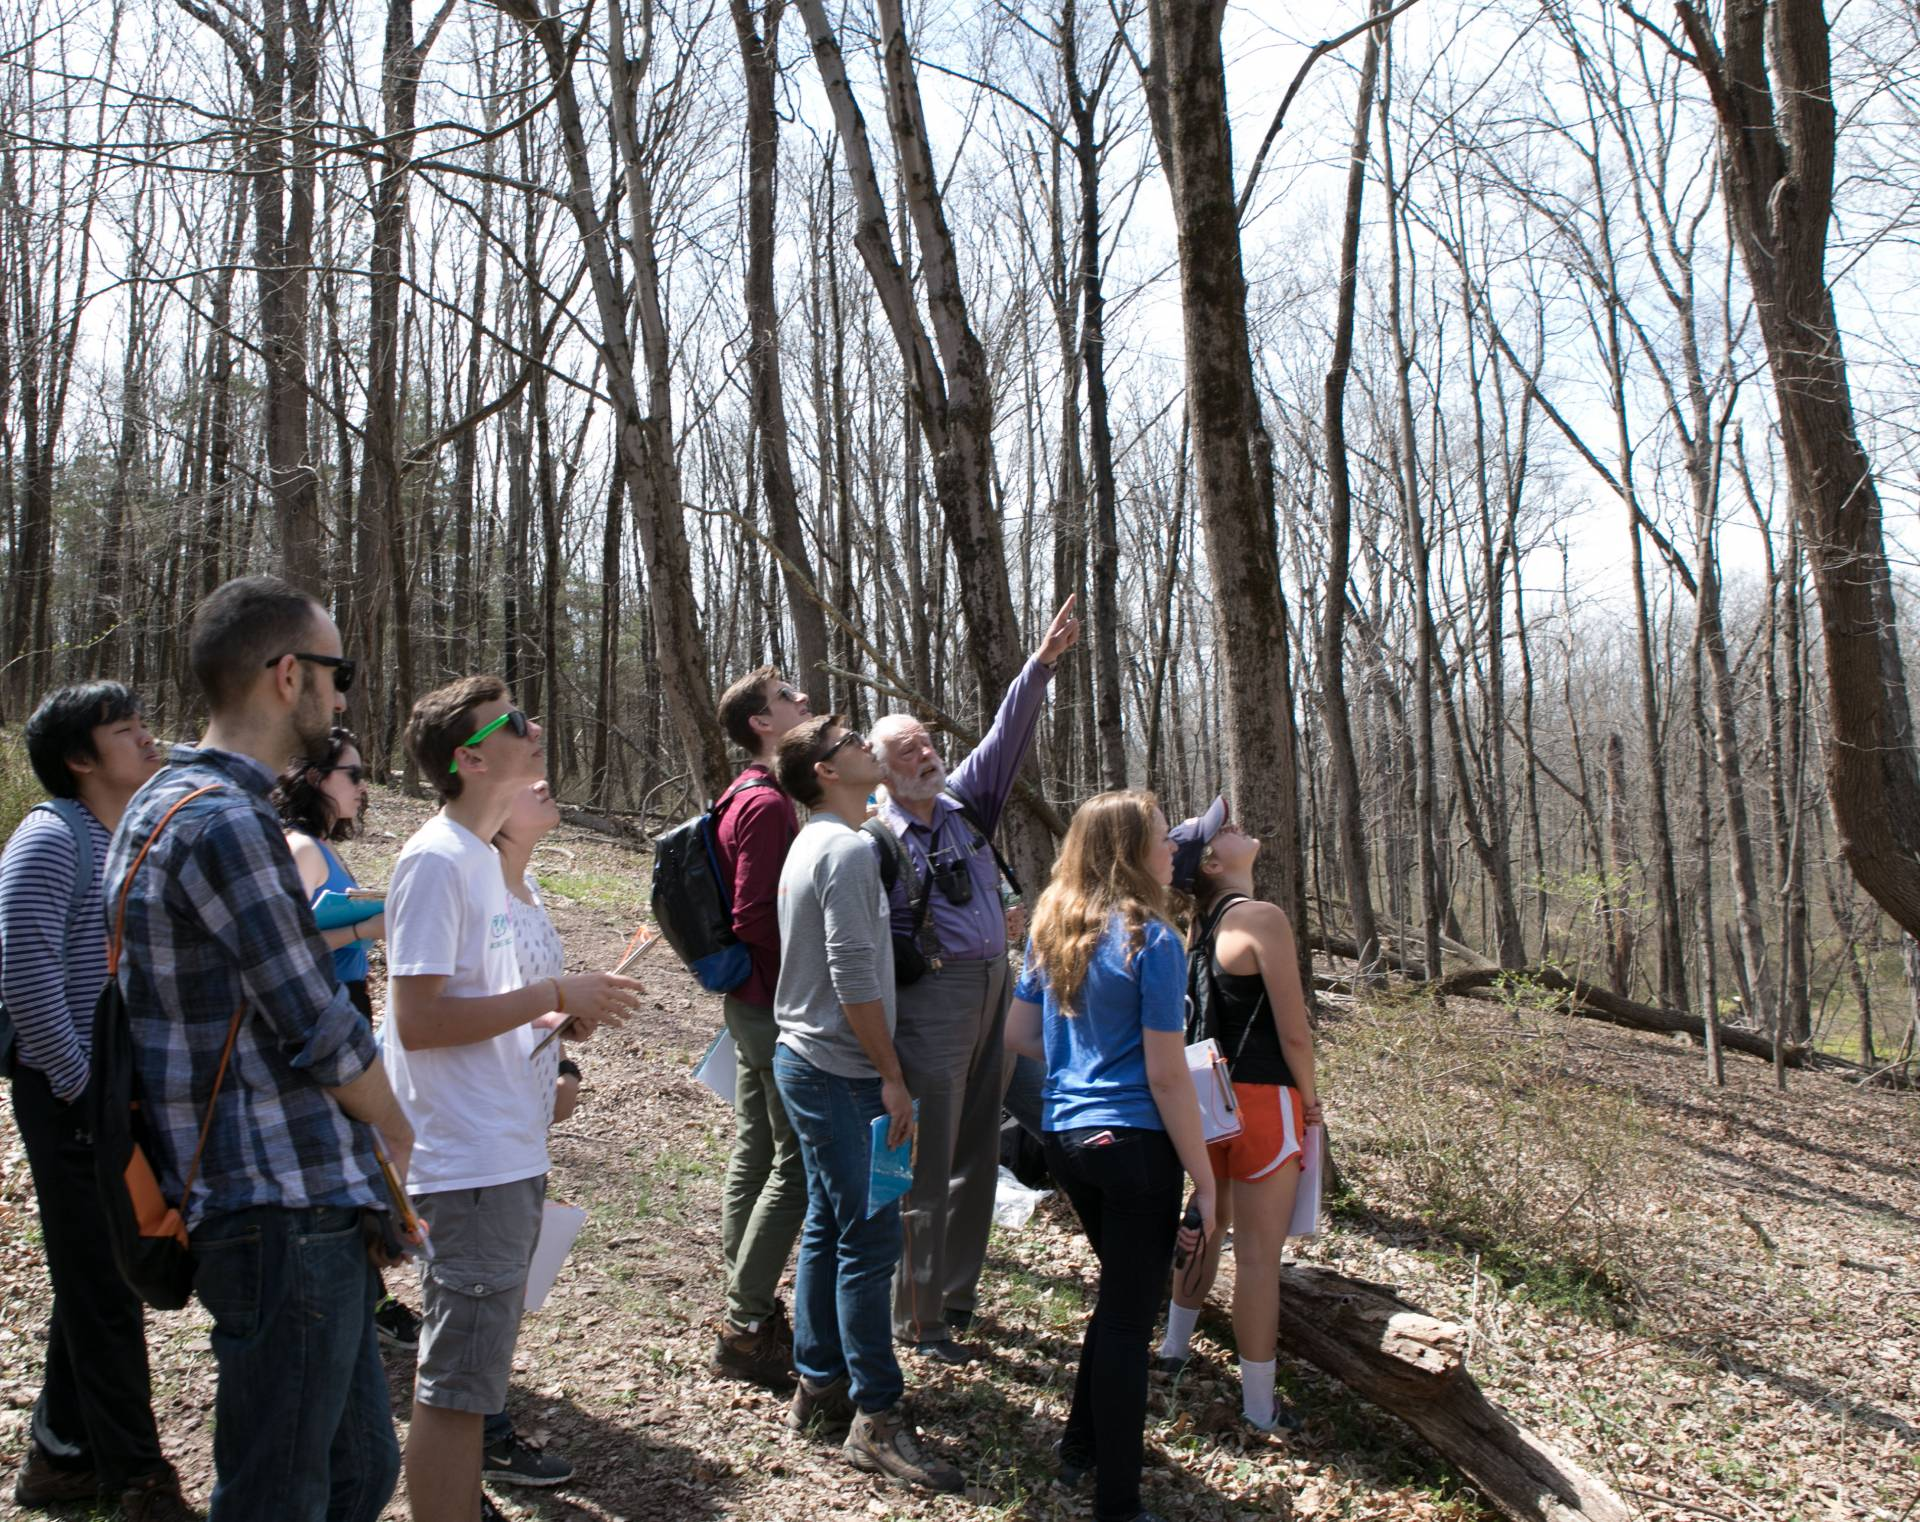 Students in forest looking at trees with Professor Horn